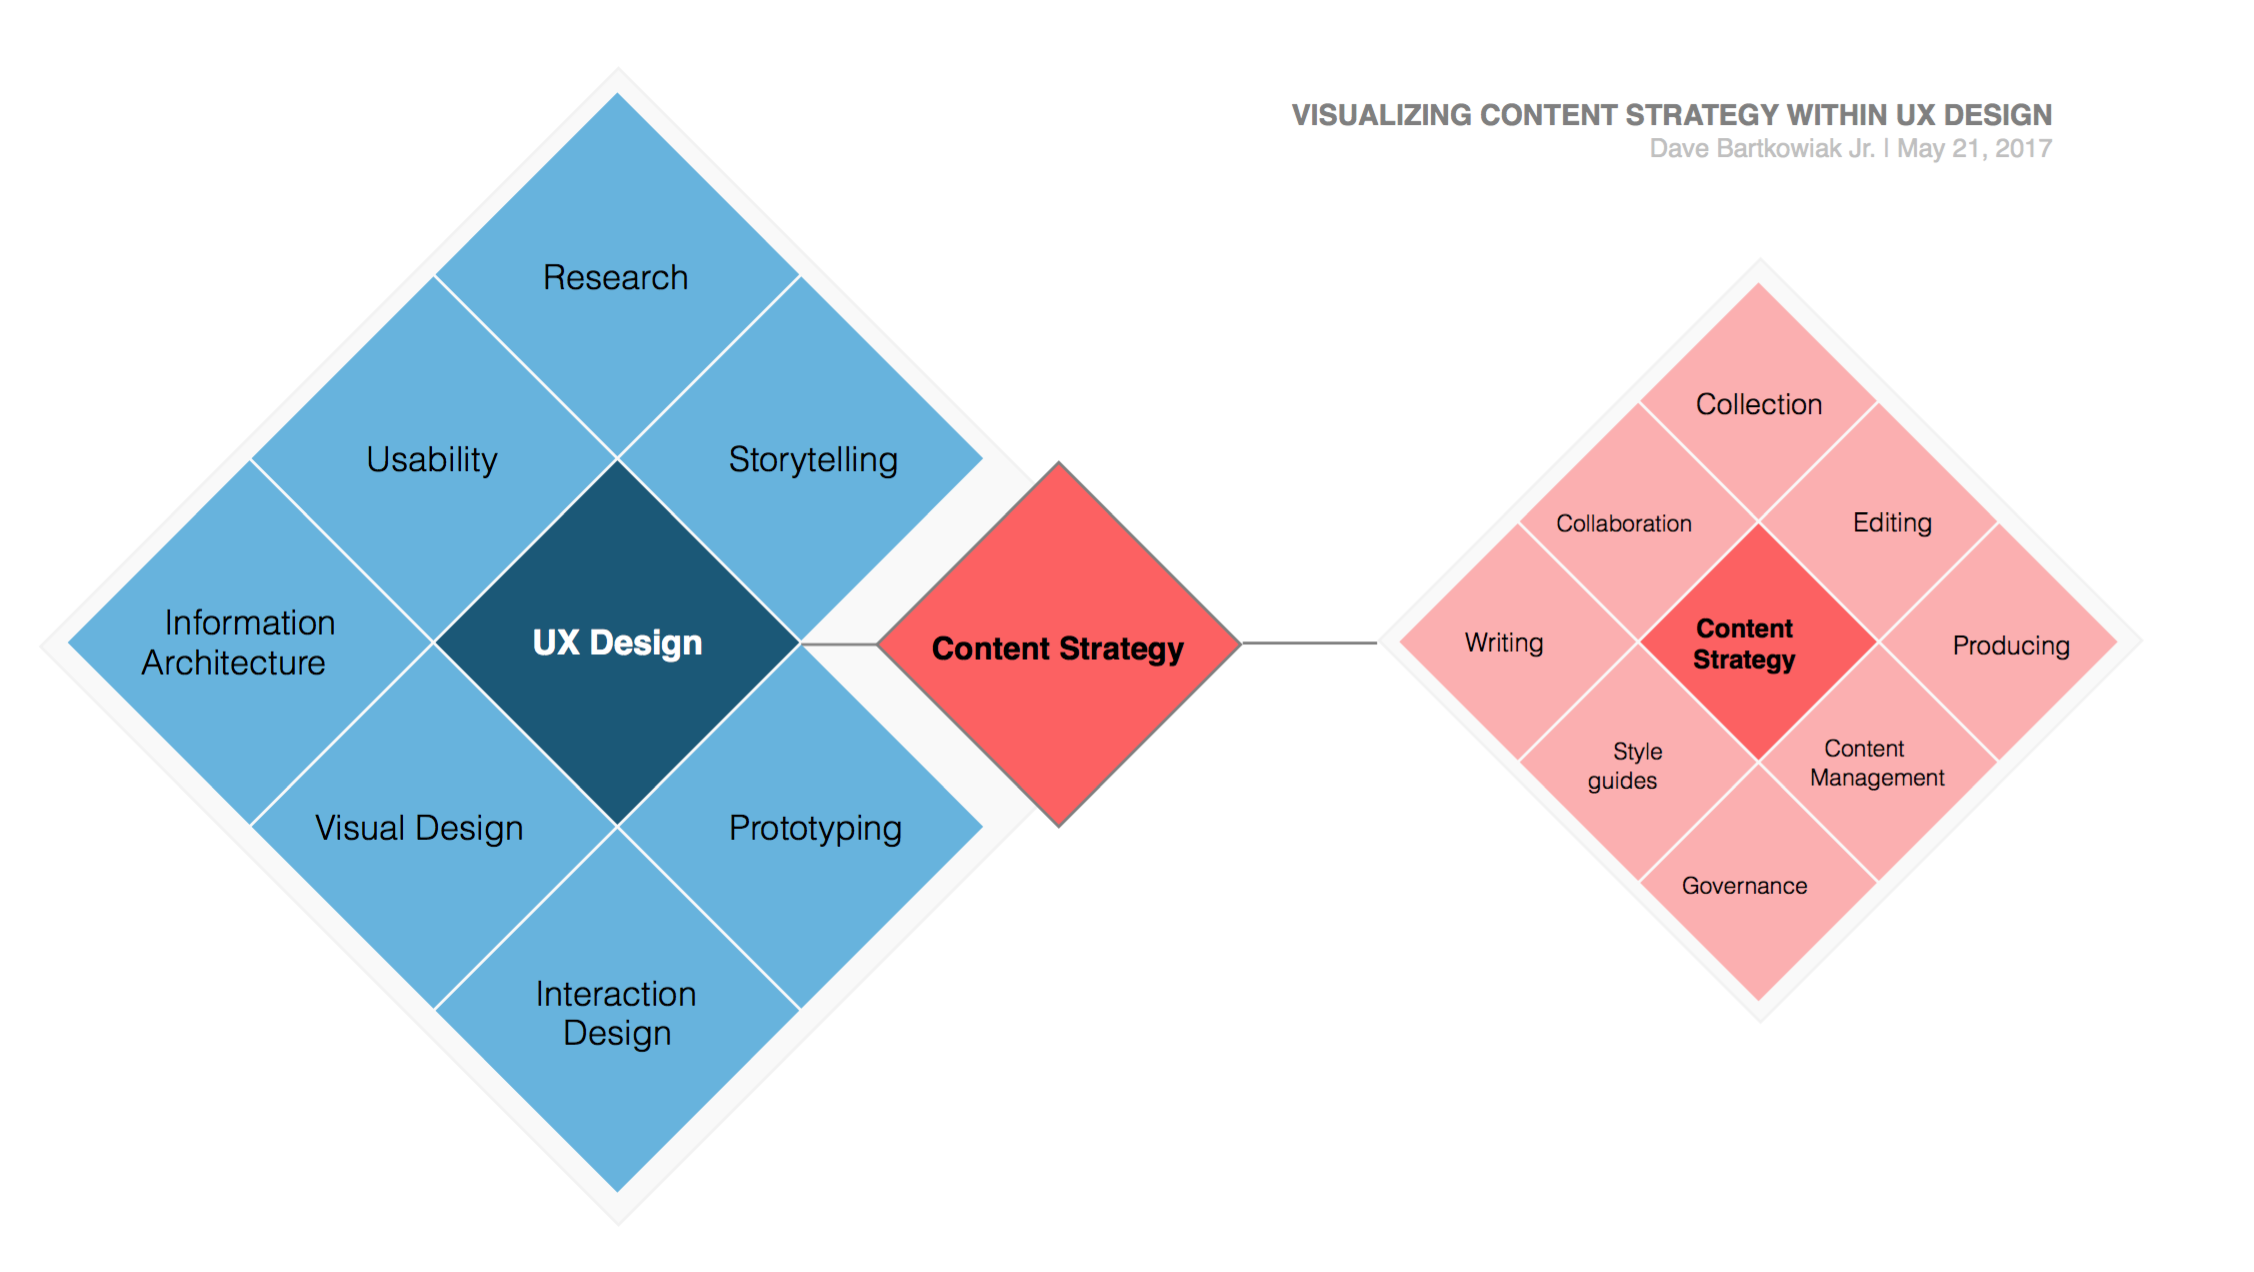 visualizing-content-strategy-within-ux-design